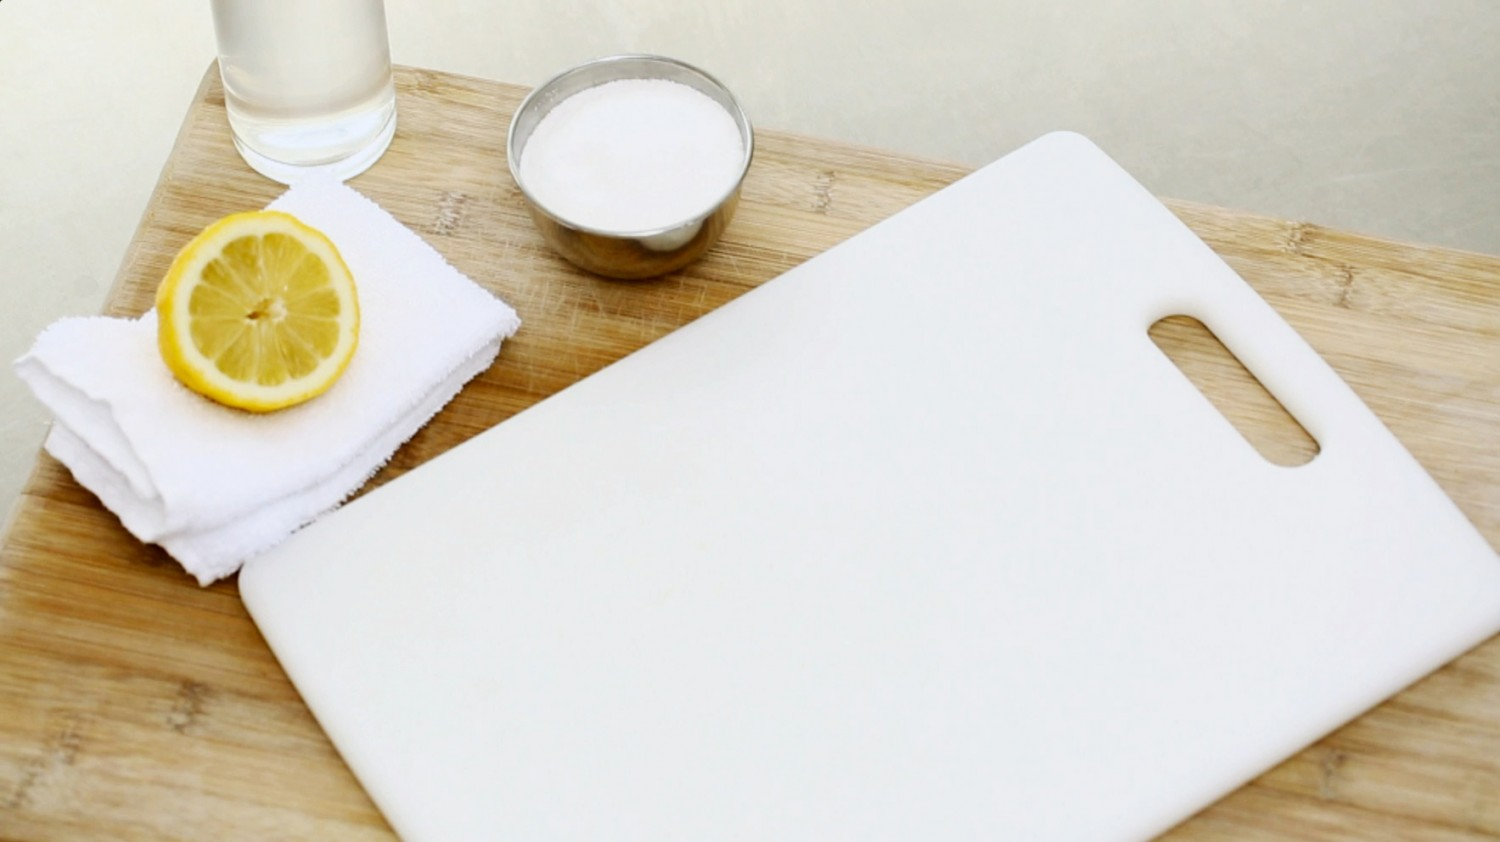 How To Clean A Cutting Board Cleaning Services Birmingham